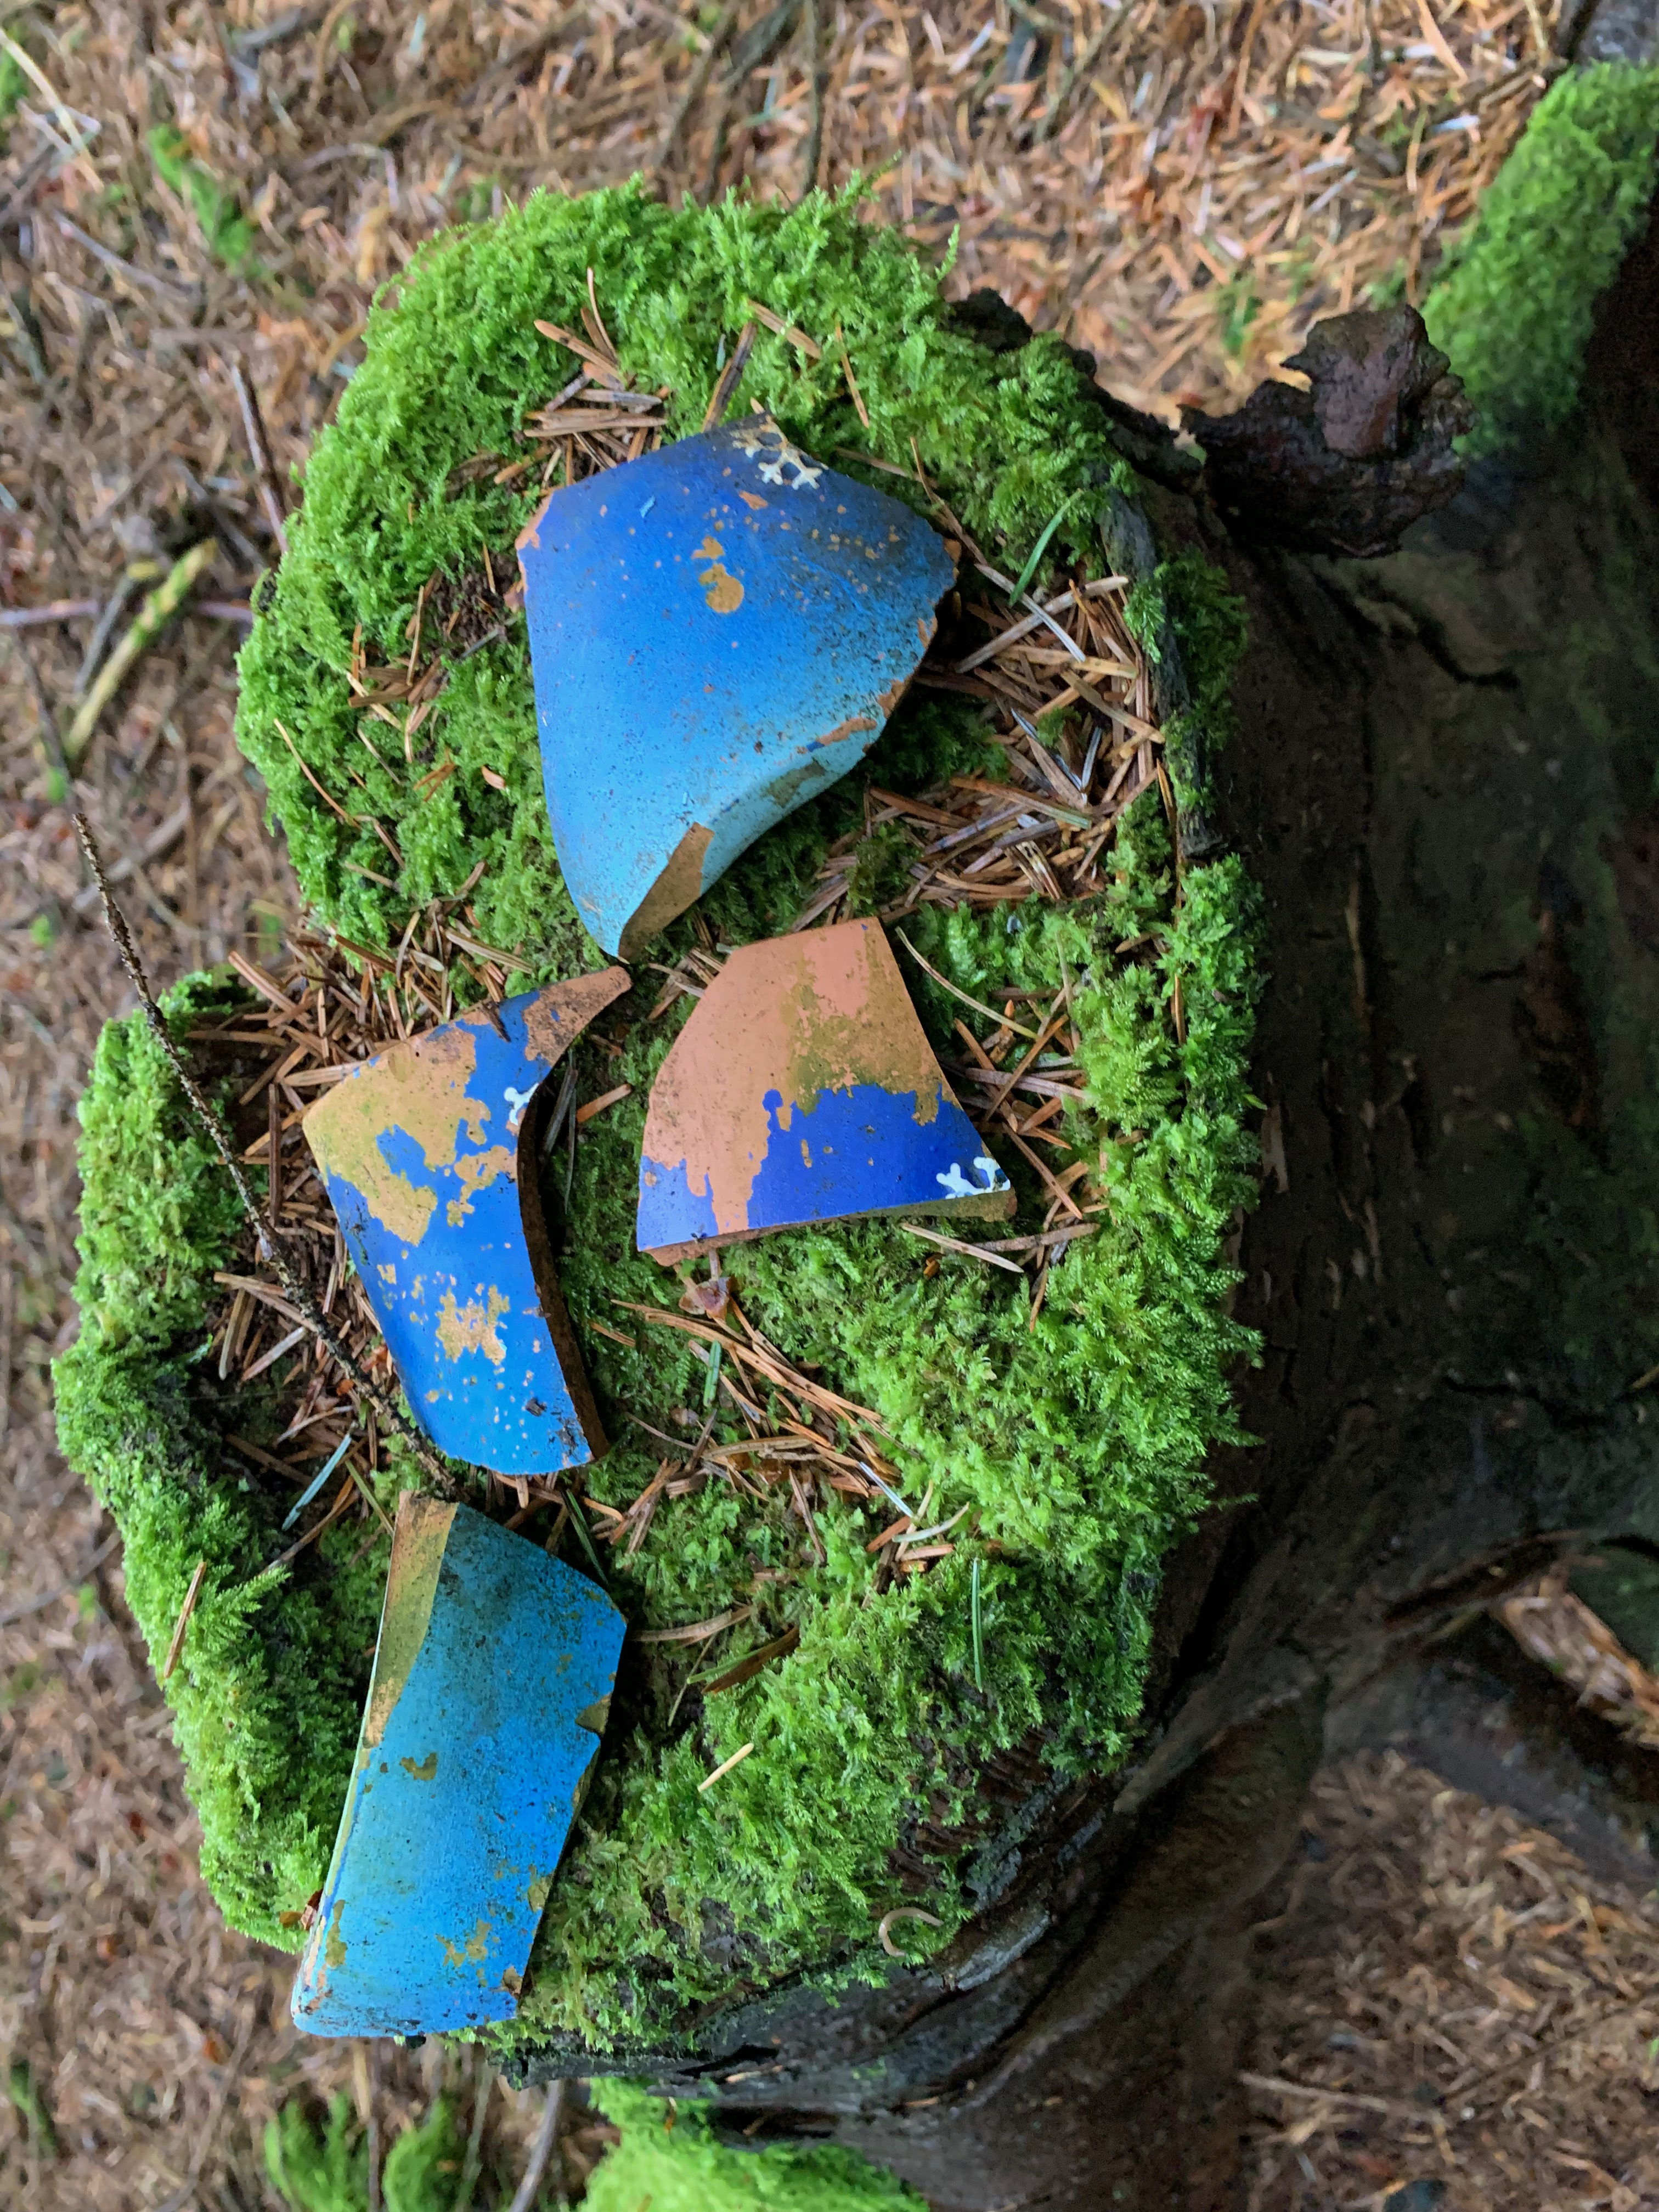 broken blue pottery with white snowflakes painted on a moss covered tree stump in a forest